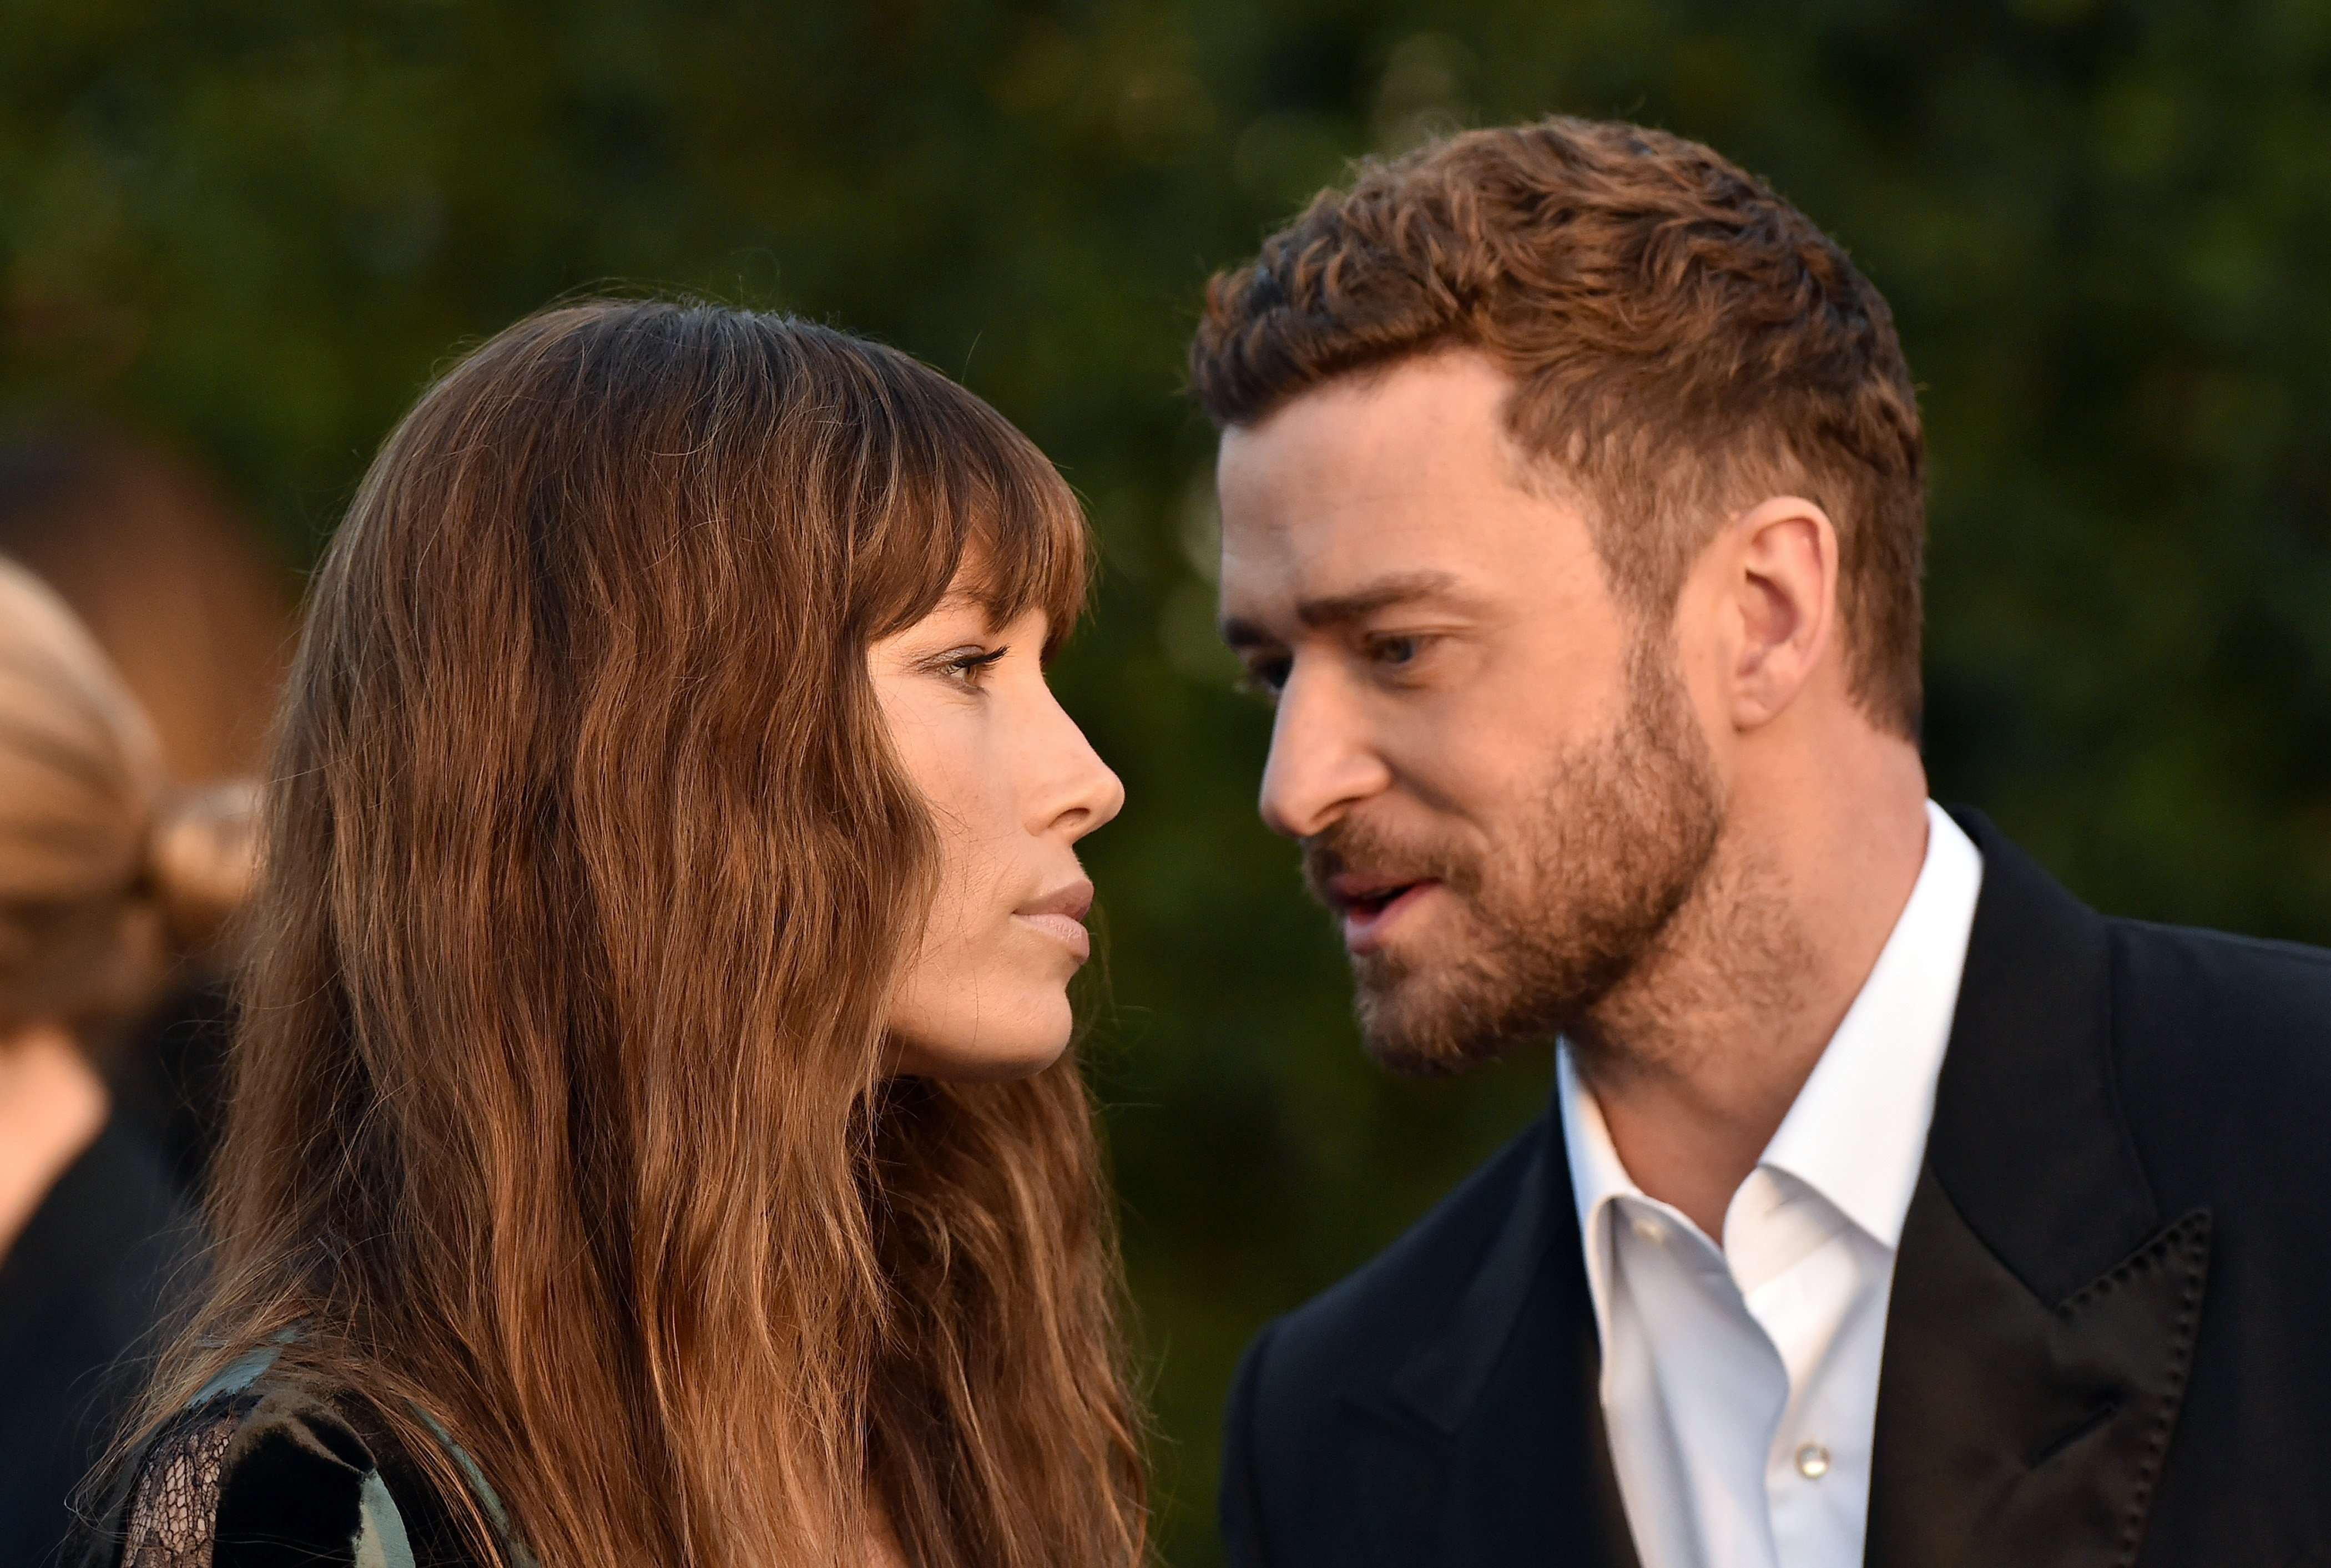 Justin Timberlake and Jessica Biel pictured at The 22nd Annual Critics' Choice Awards at Barker Hangar, 2016, Santa Monica, California.   Photo: Getty Images